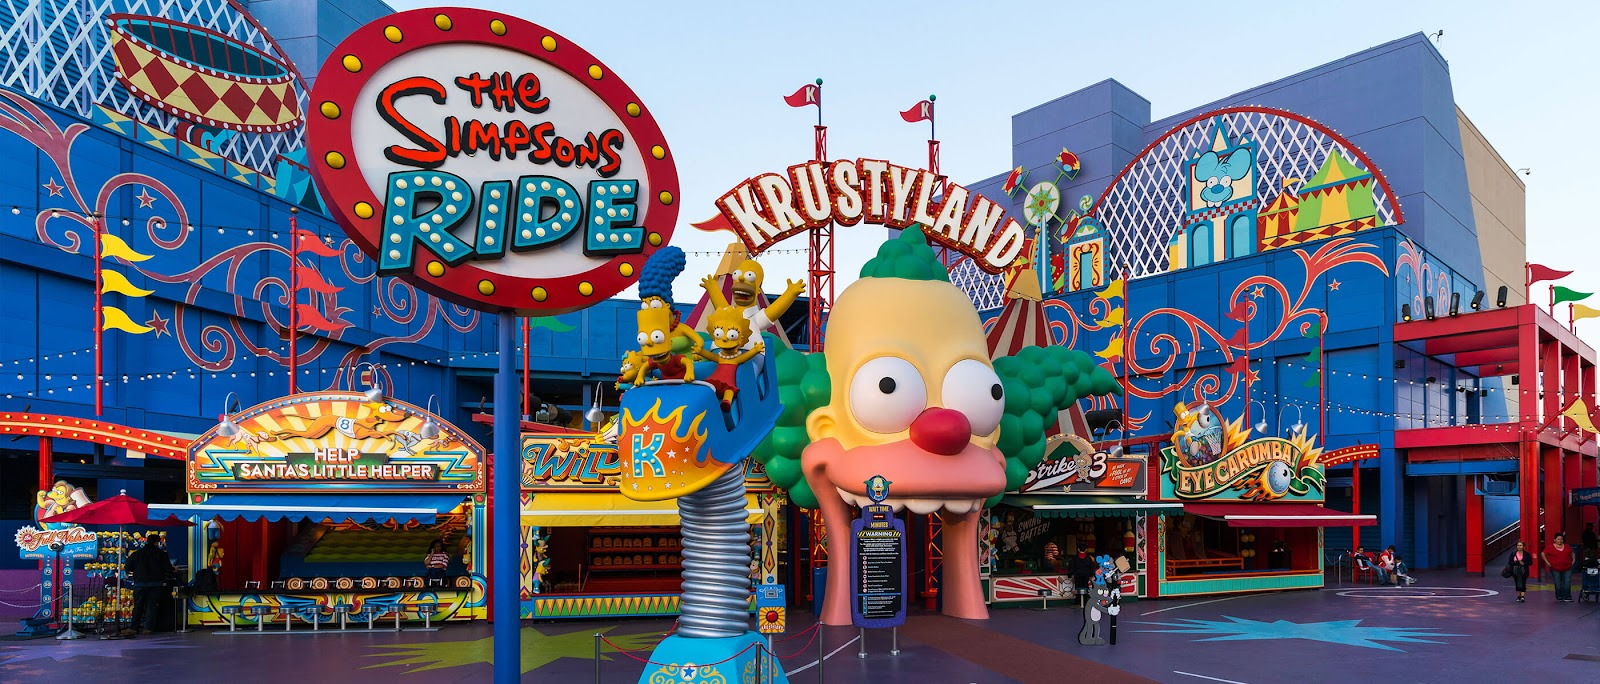 "Characters from ""The Simpsons"" sitting in a roller coaster in front of Krustyland at Universal Studios."